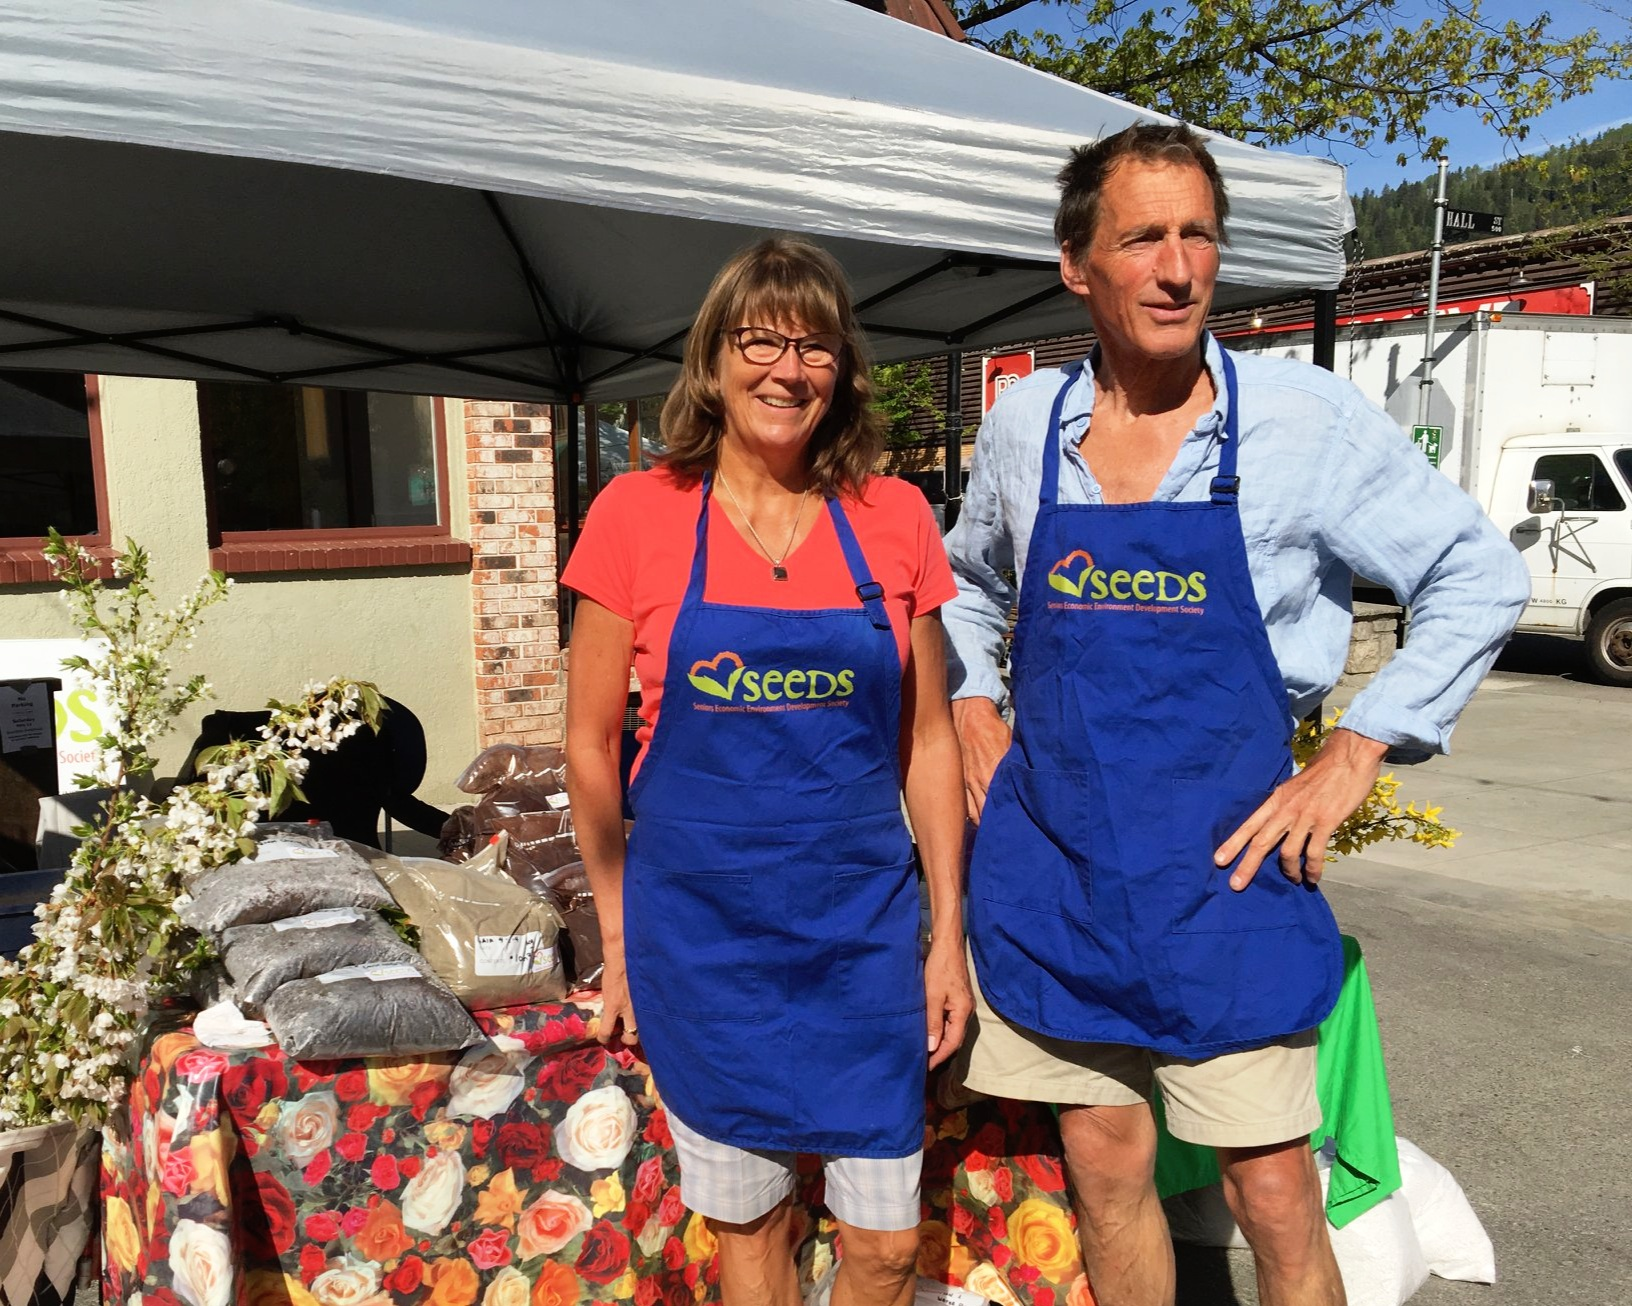 Jon Meyer and Liz Abraham at GardenFest 2019